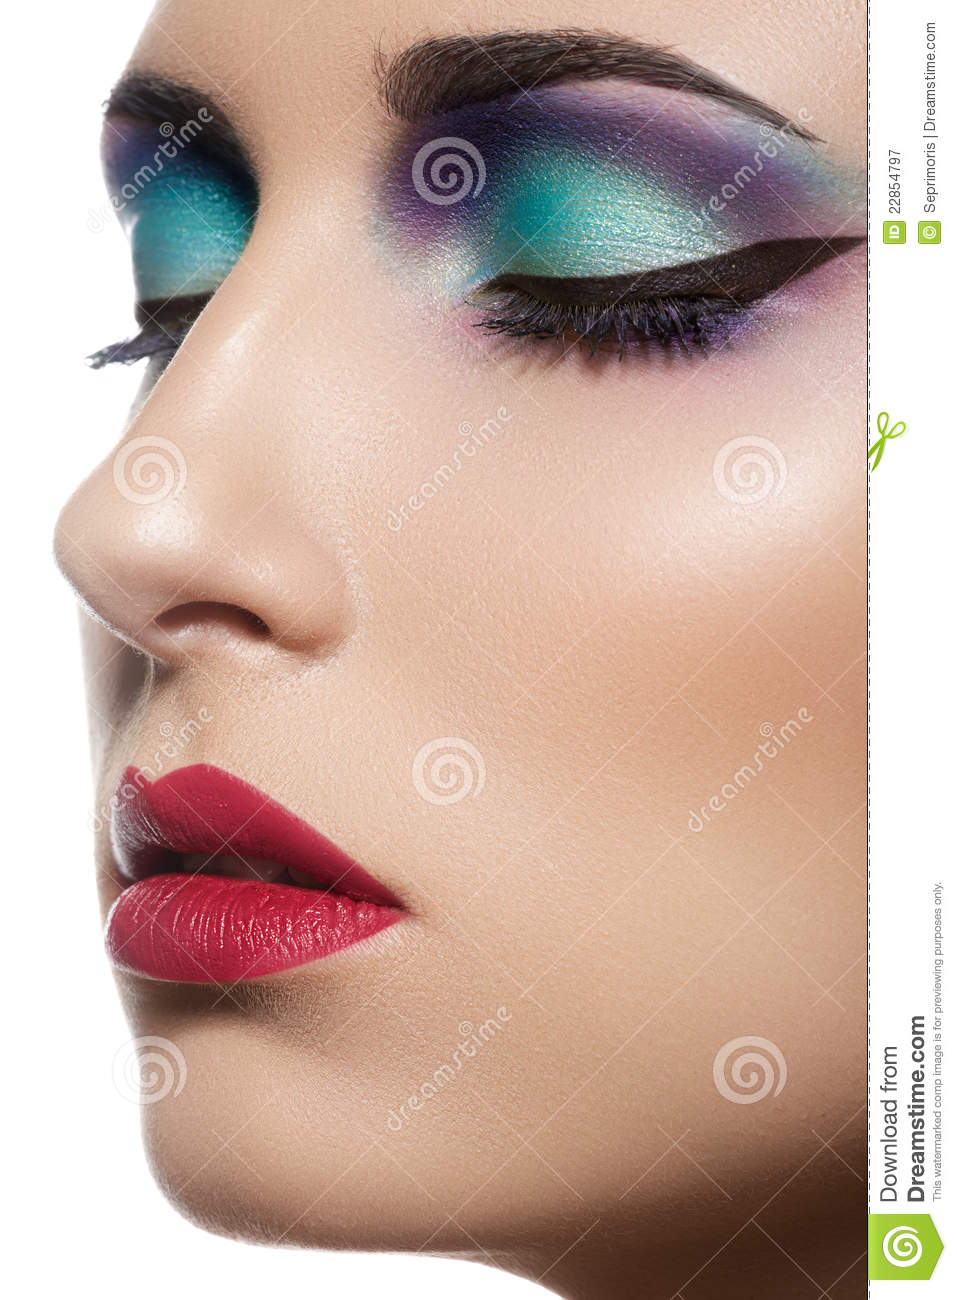 Close-up beautiful model face with fashion make-up